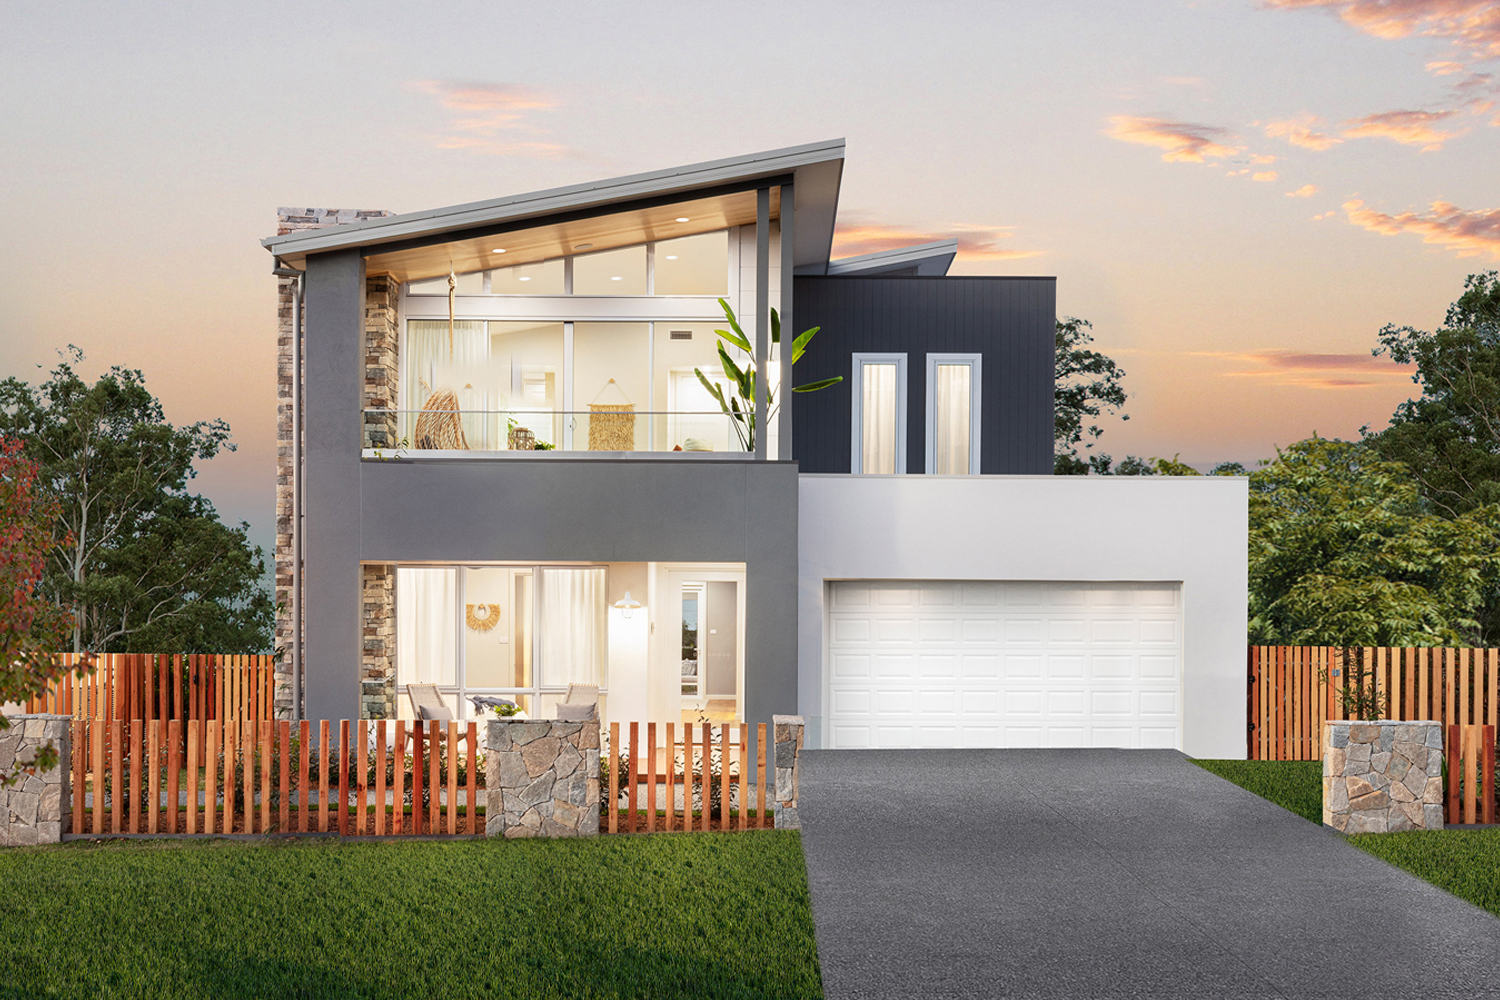 Fixed Price Home Building: lock in your price so you can elevate your living without elevated costs.